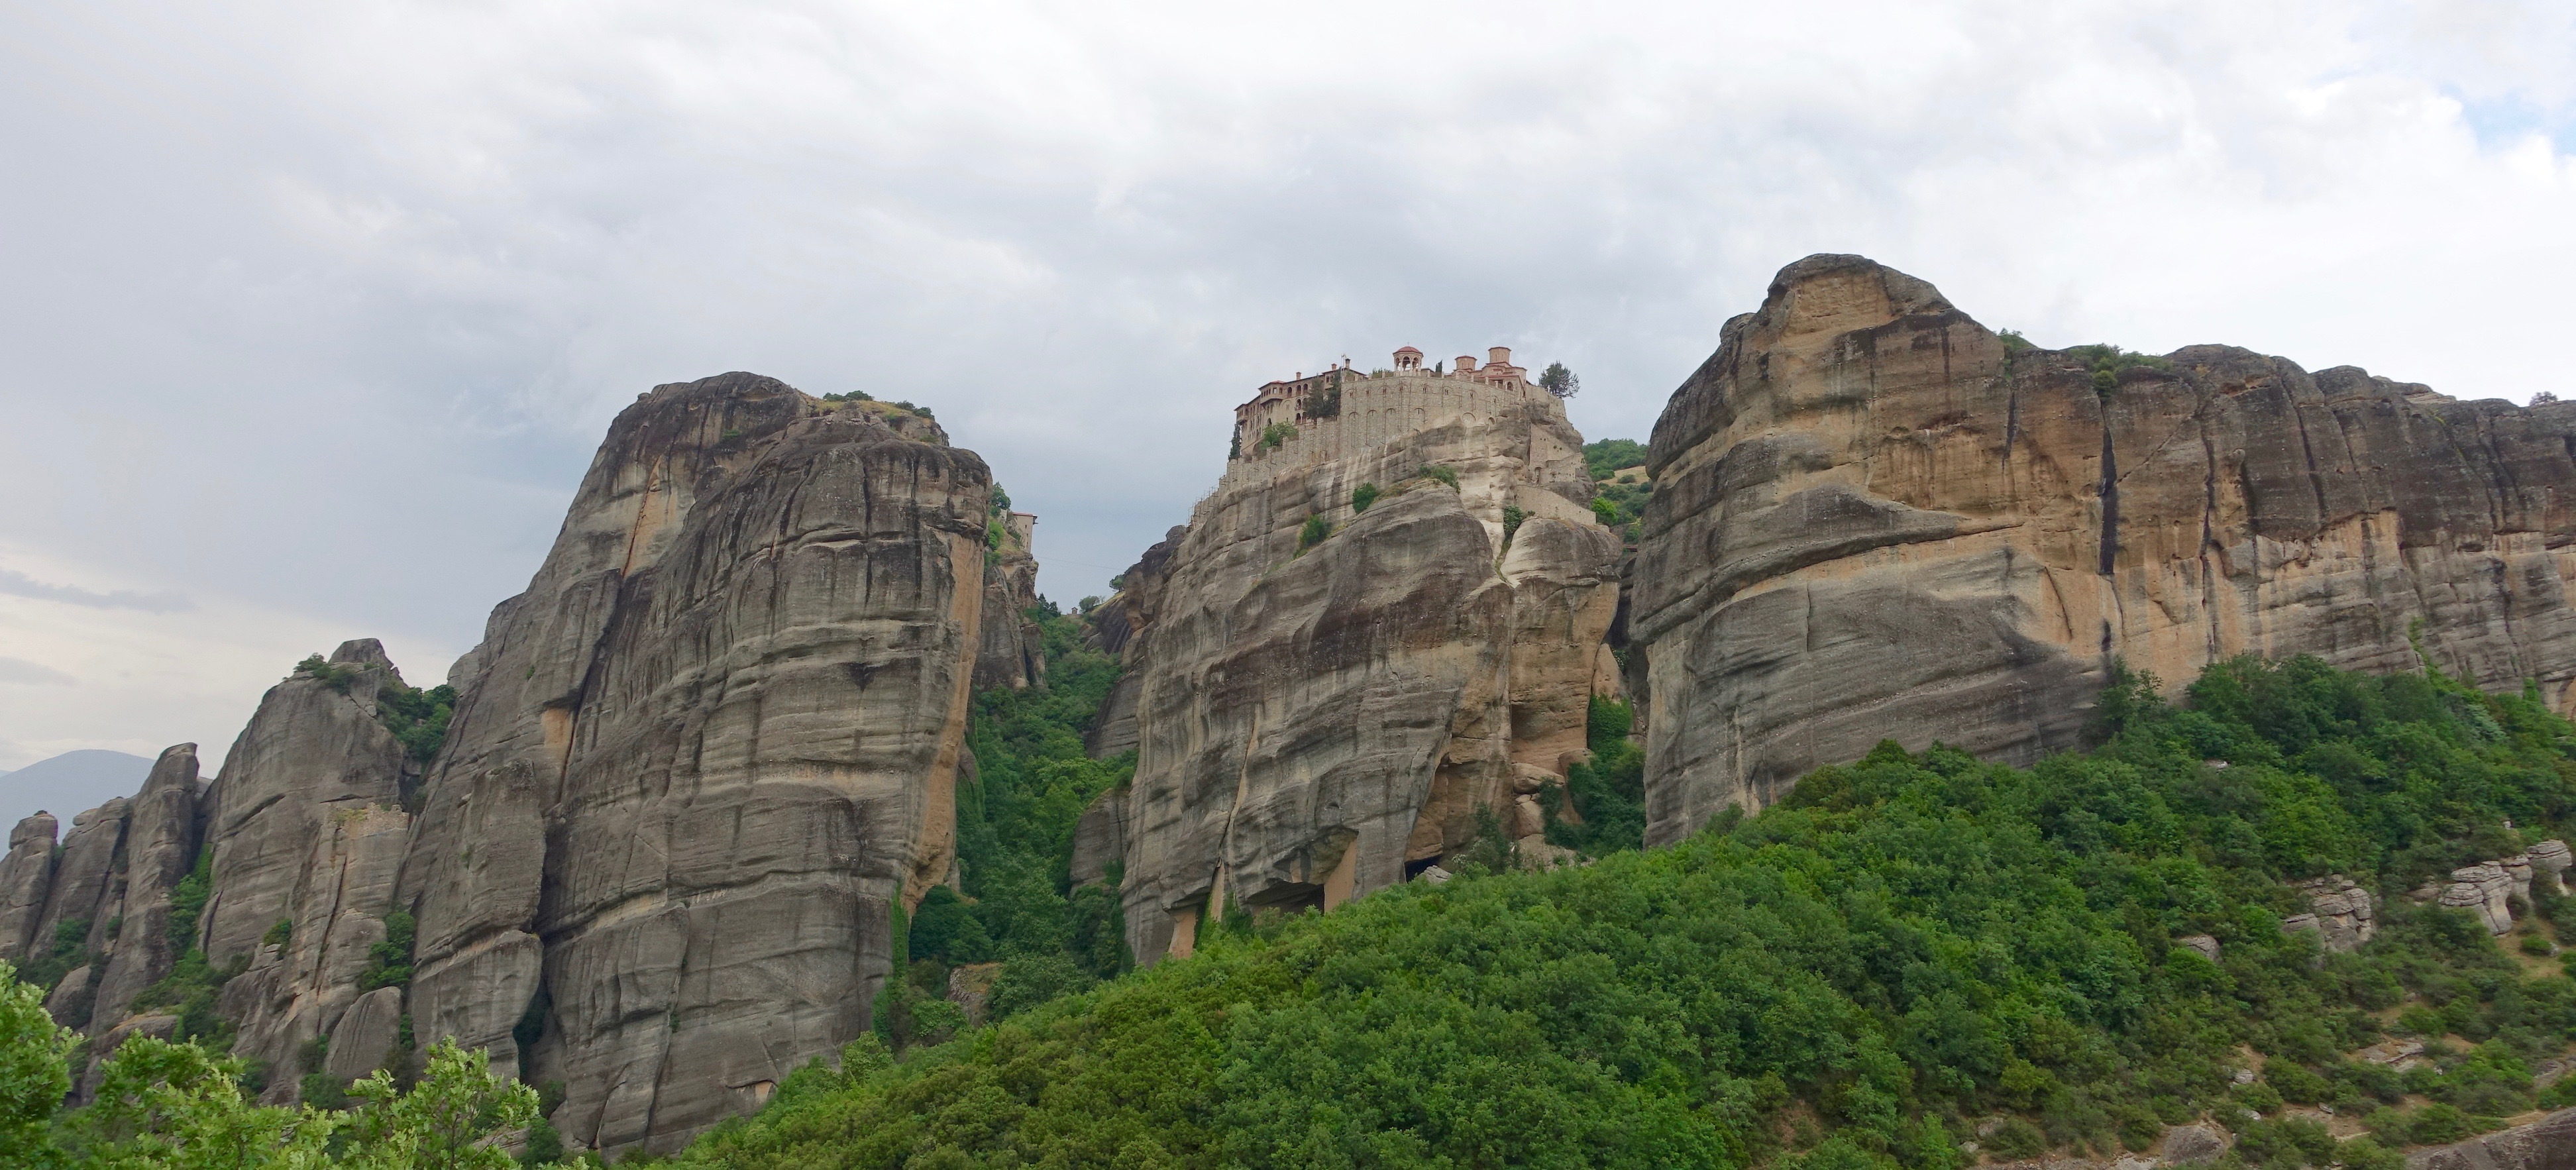 The Monasteries of Meteora, Central Greece